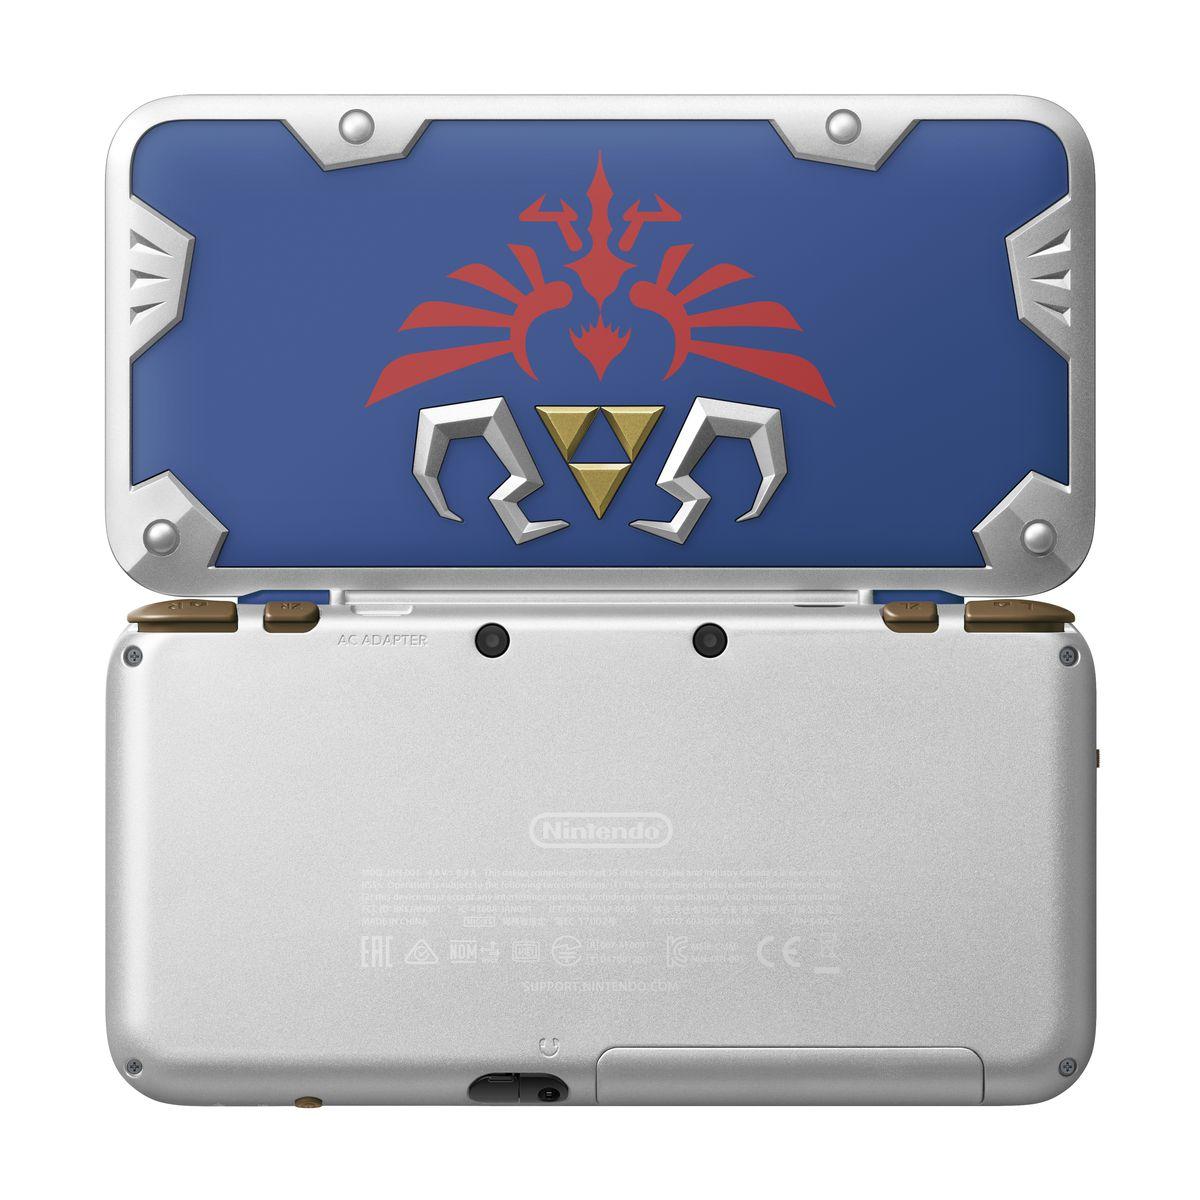 New Nintendo 2DS XL Hylian Shield Edition - view of top and bottom of case